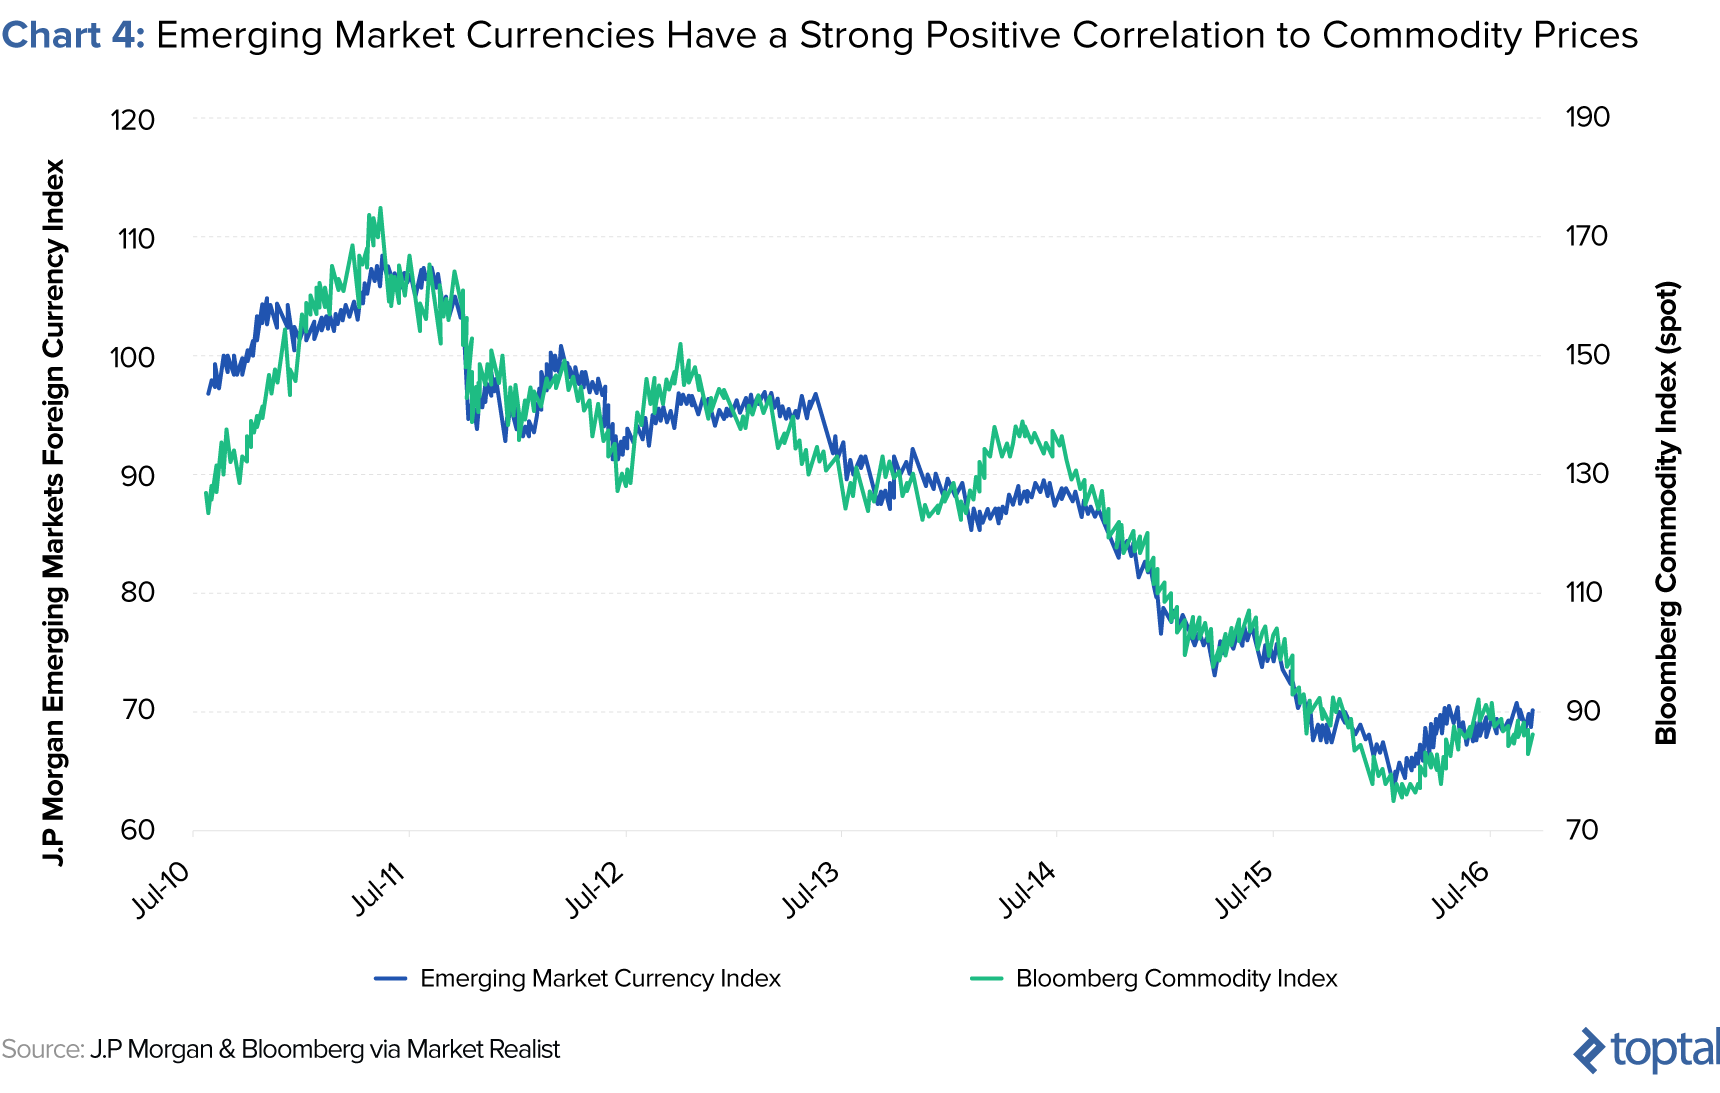 volatility of emerging market currencies versus developed market currencies